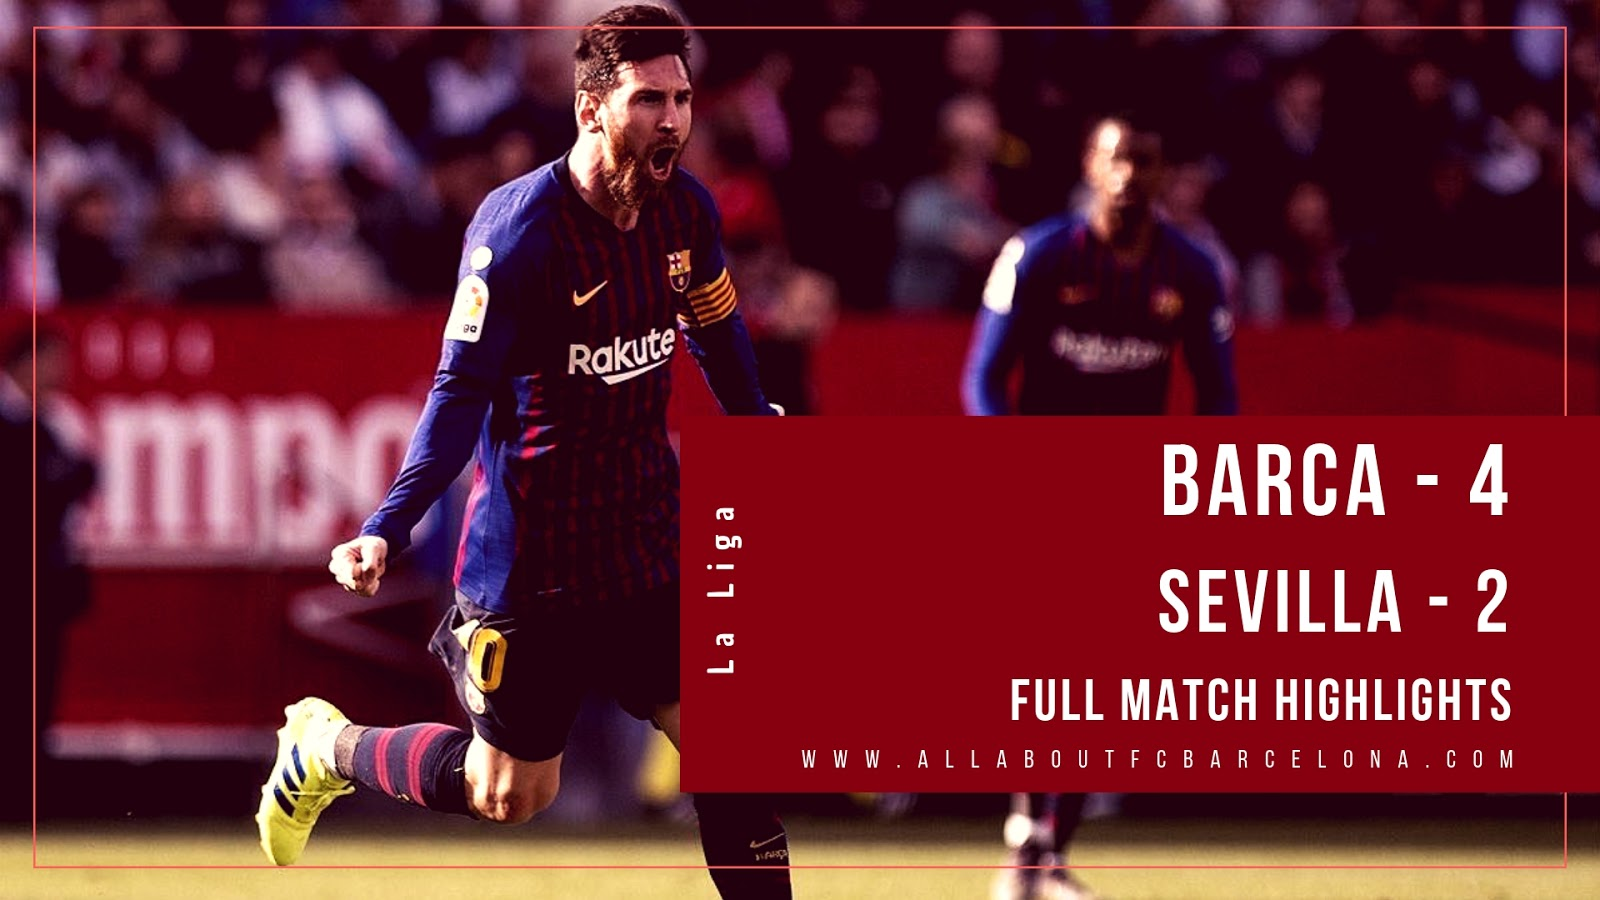 Barca vs Sevilla Match Highlights #Barca #BarcaSevilla